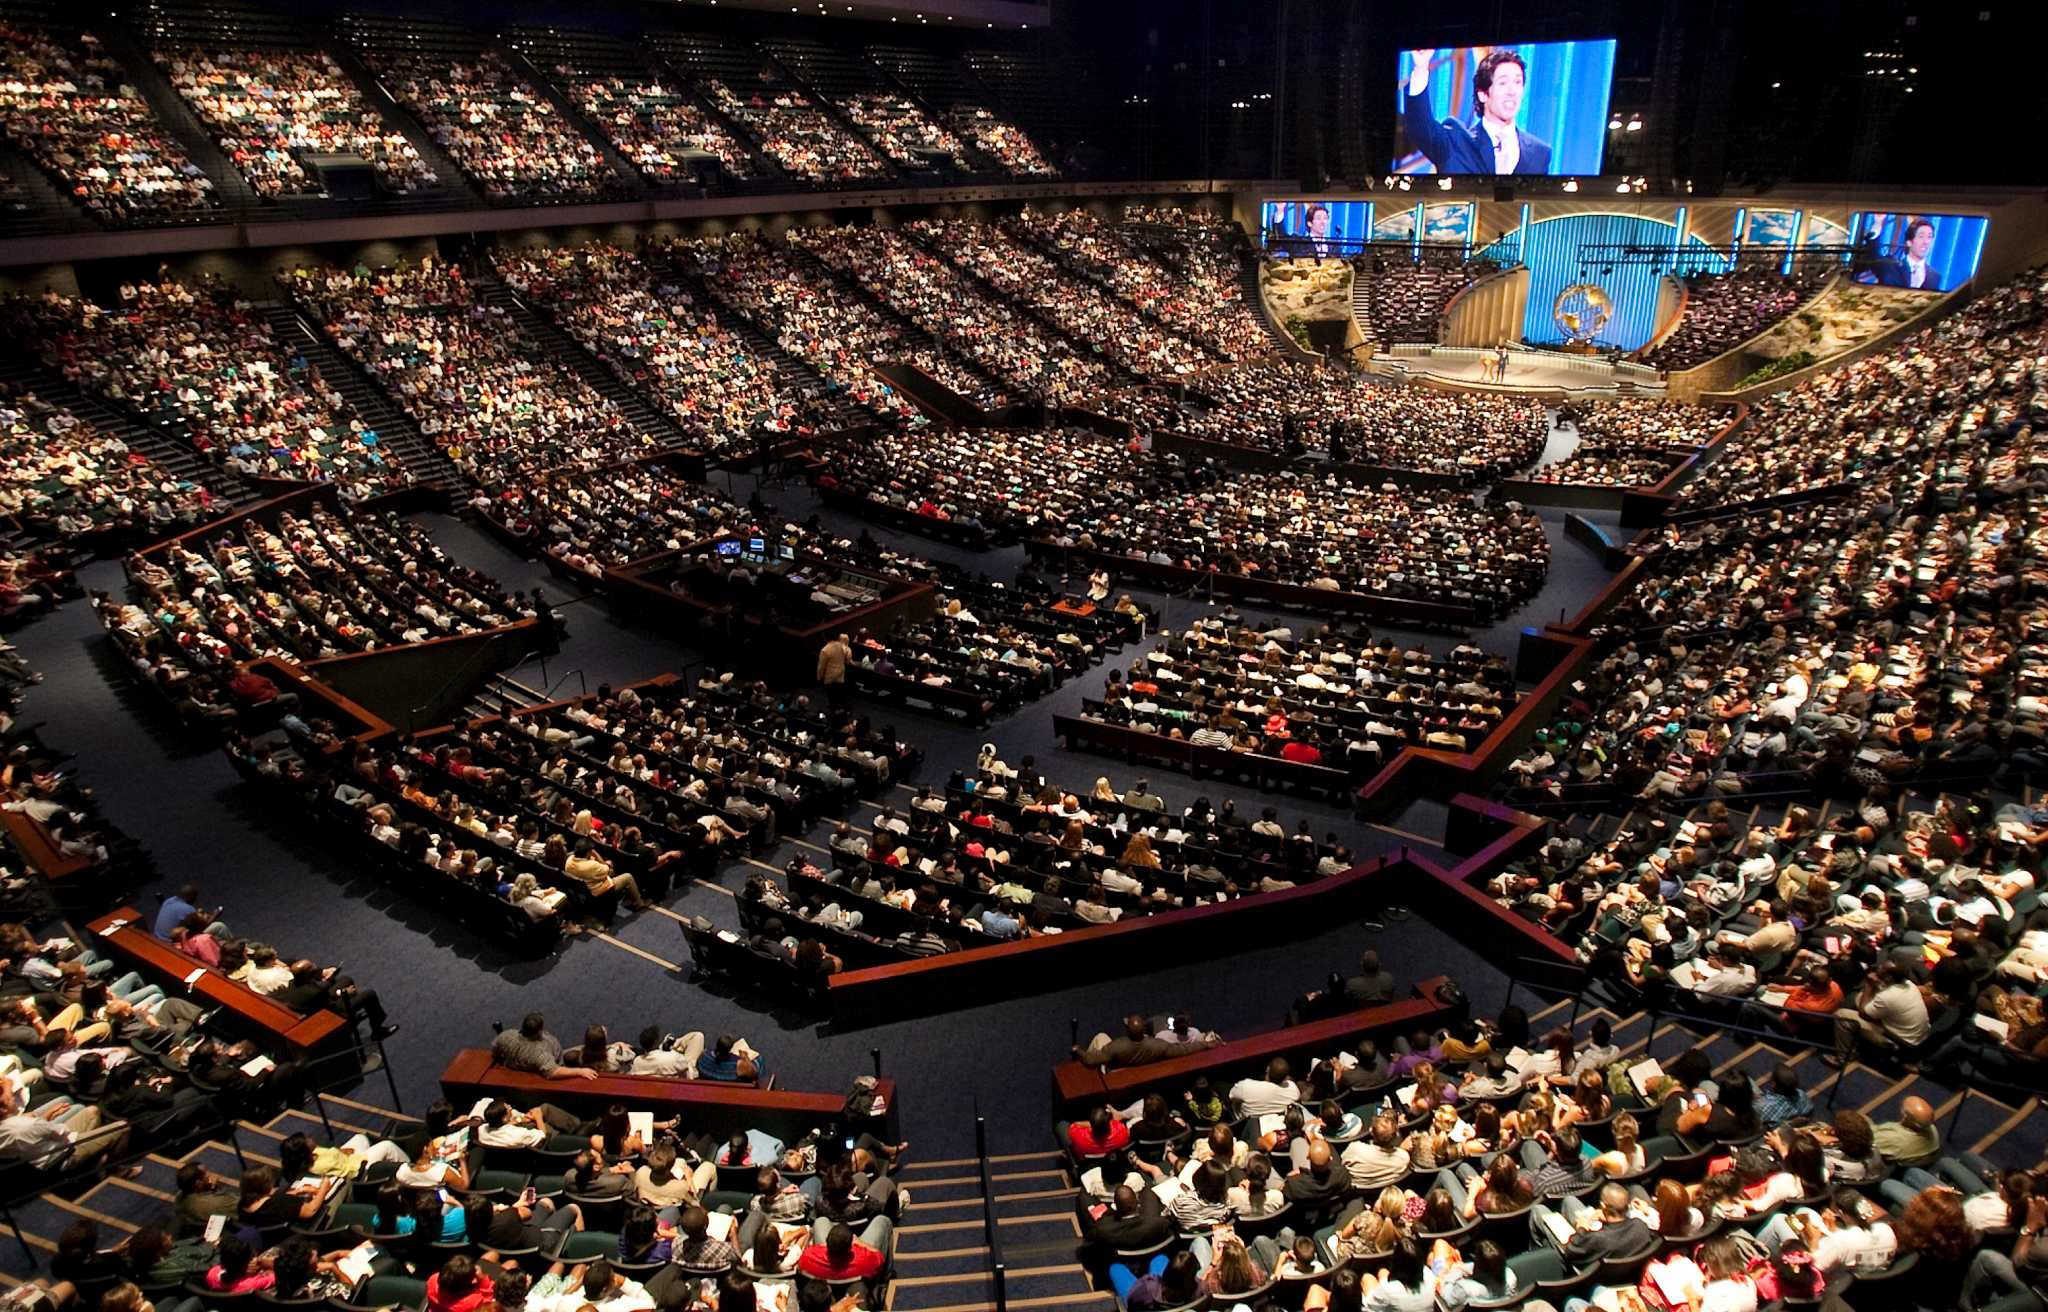 Darvin Wallis on The Modern Evangelical Church is Sick. Here's Where It Fell Apart.